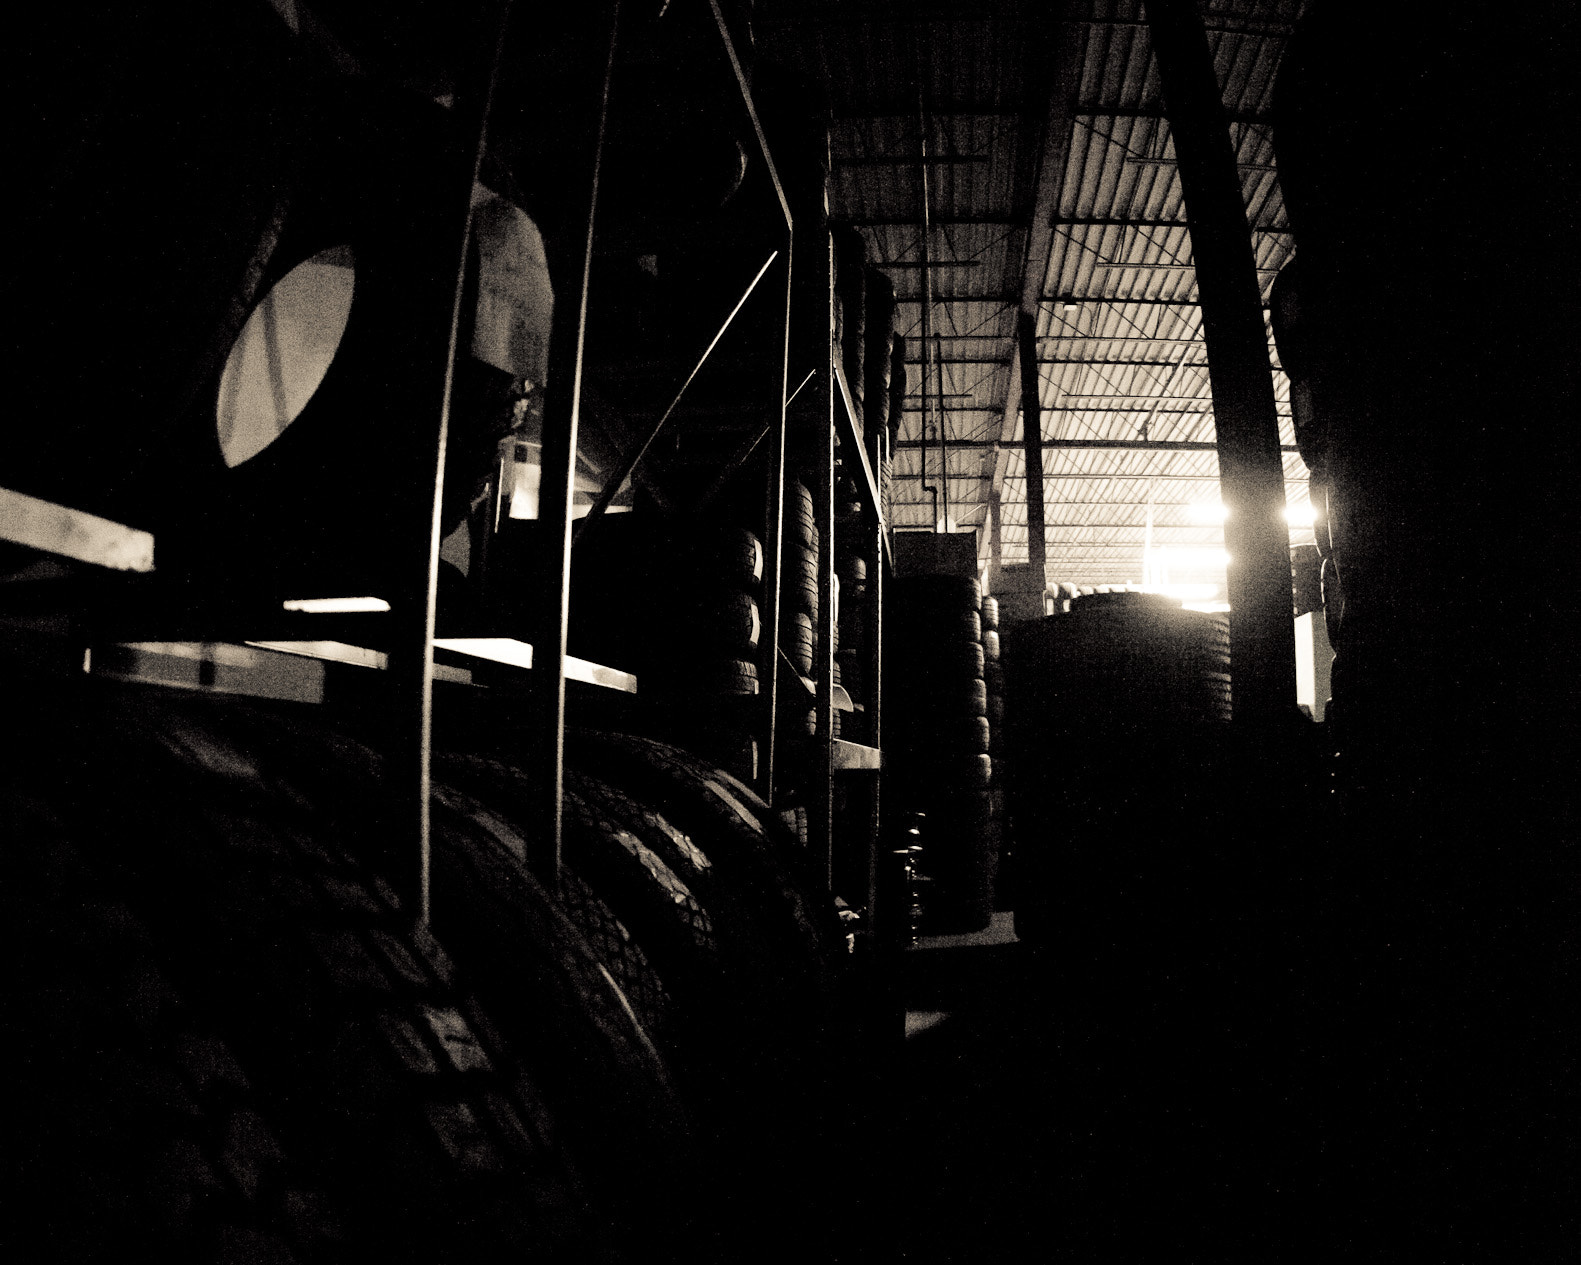 Photograph Tires in the Dark by Raymond Siu on 500px